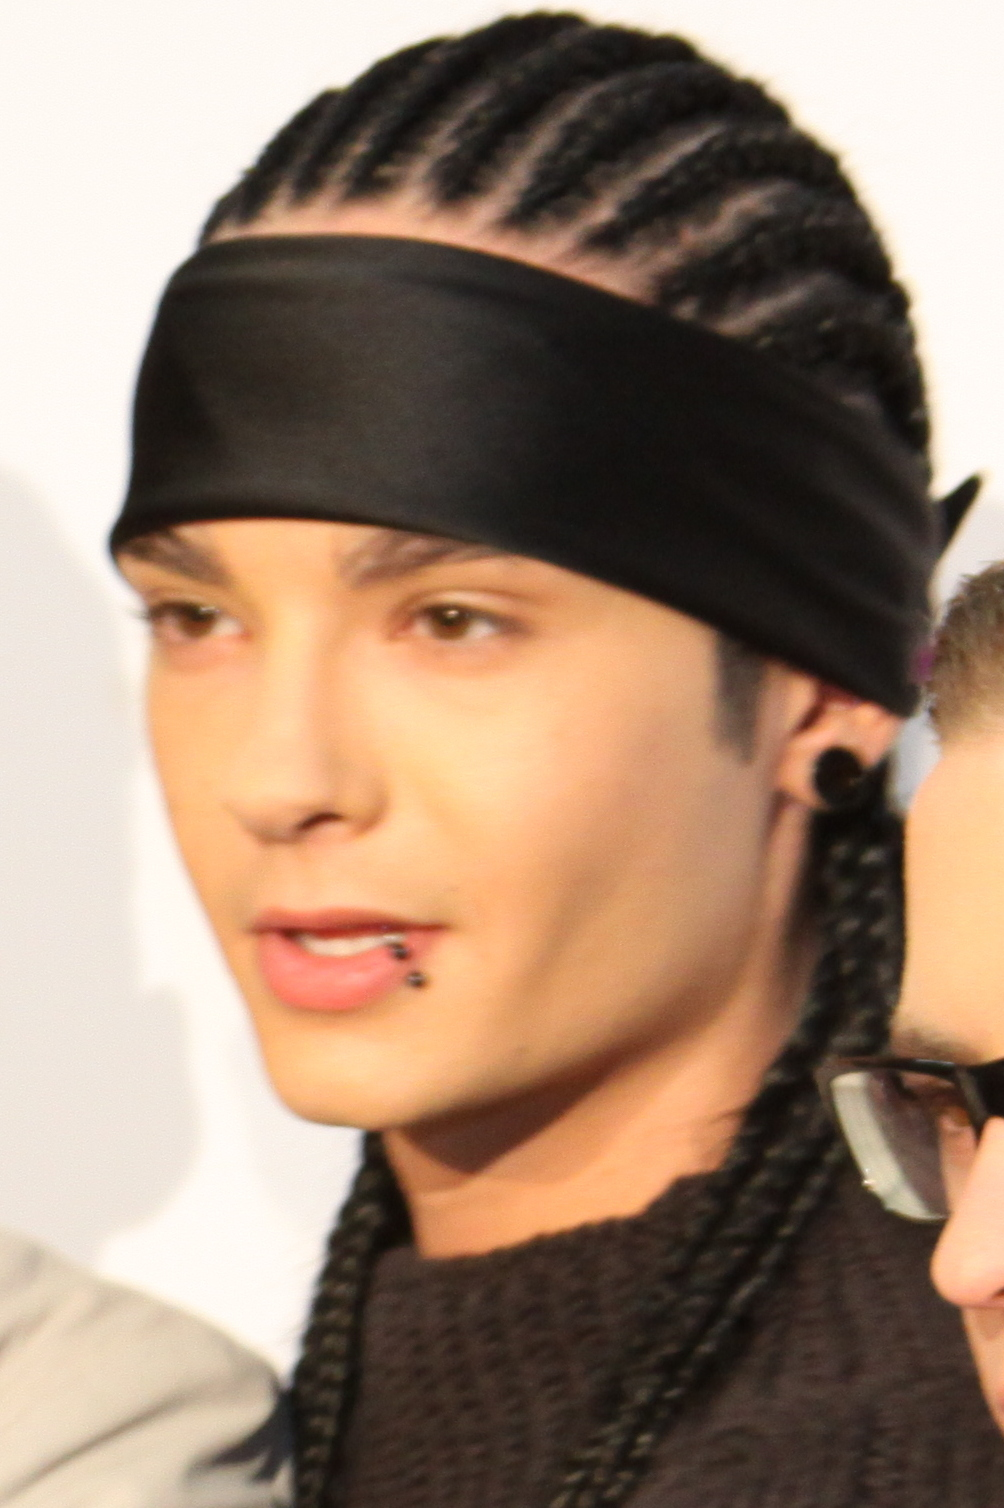 Picture of tom kaulitz - File Tom Kaulitz 2010 Jpg